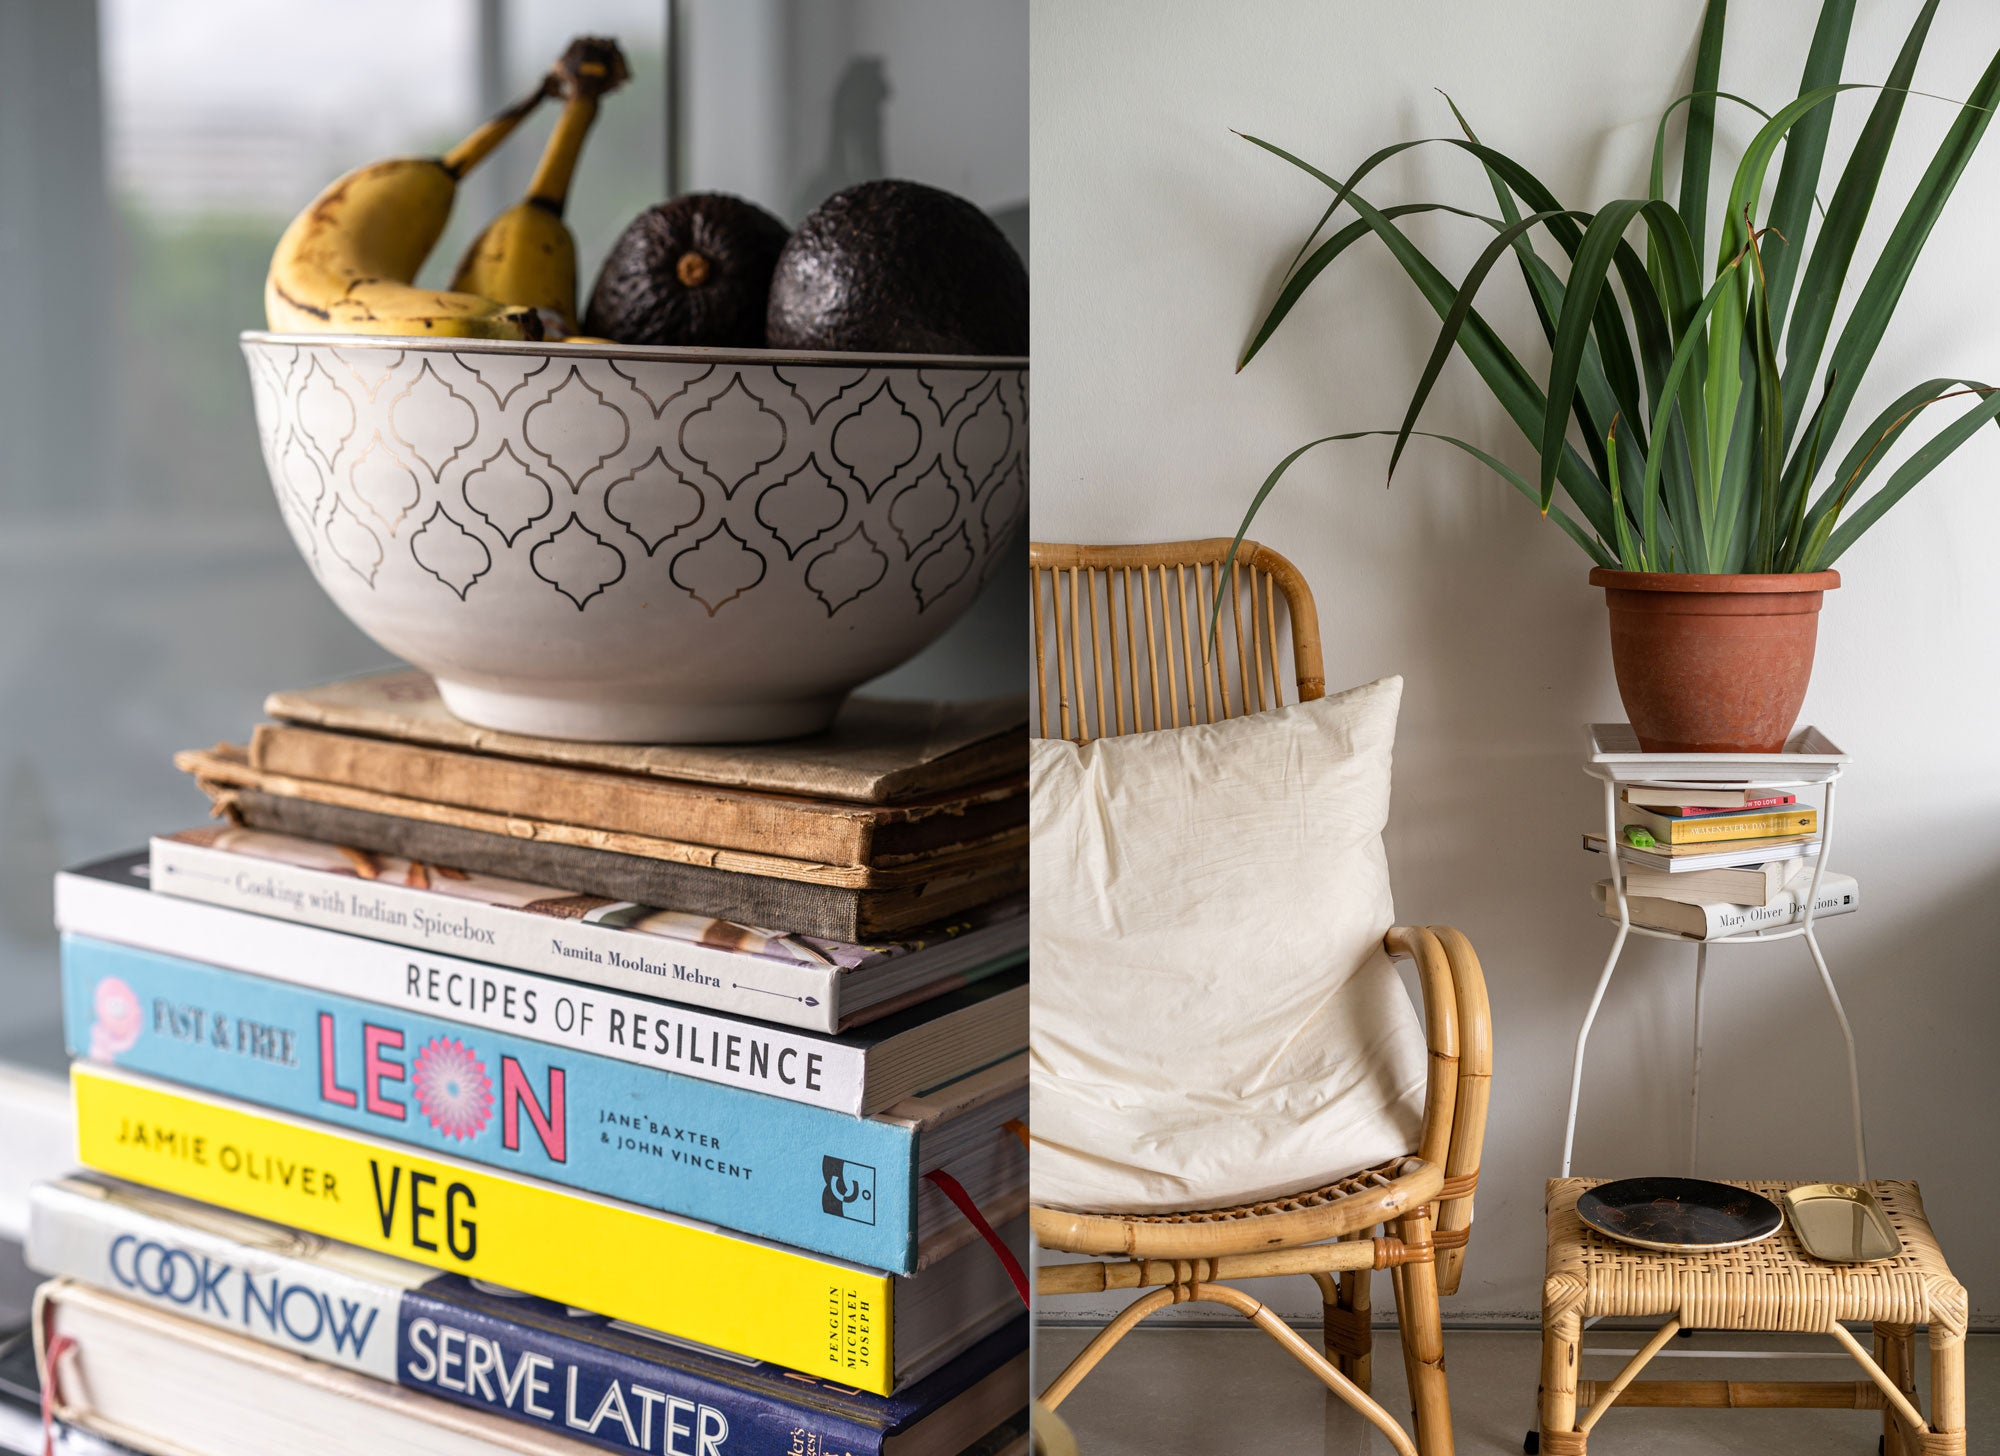 banana and avocado on book stacks and rattan furniture in modern home